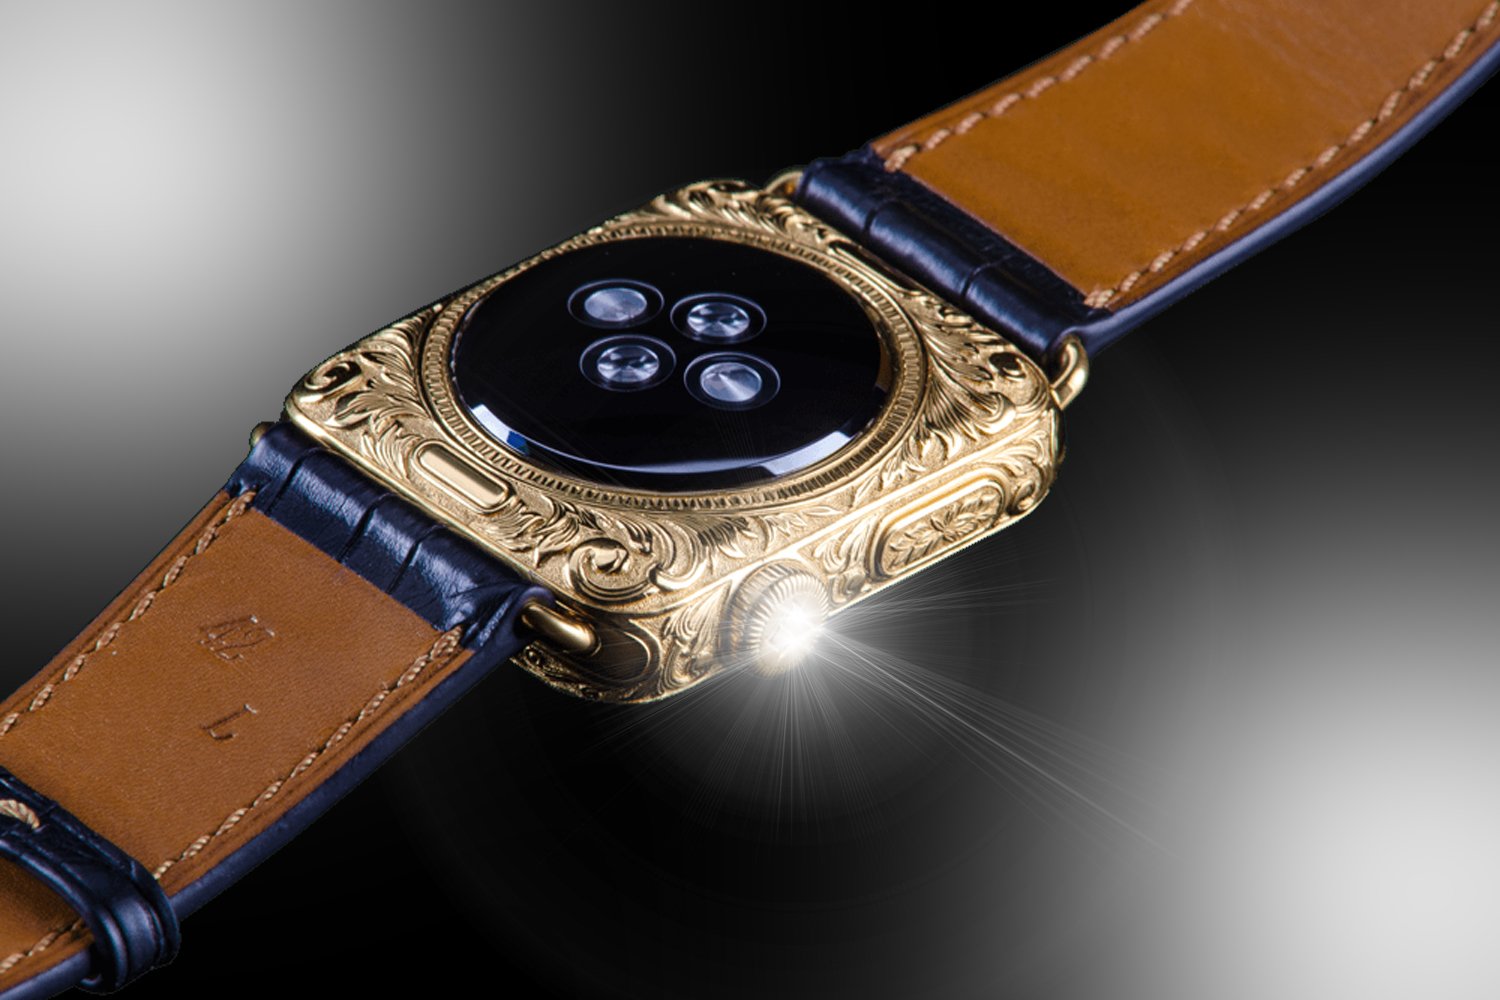 95ba37a8f15 Stuart Hughes 24ct Gold Vintage Apple Watch SERIES 4 Edition ...